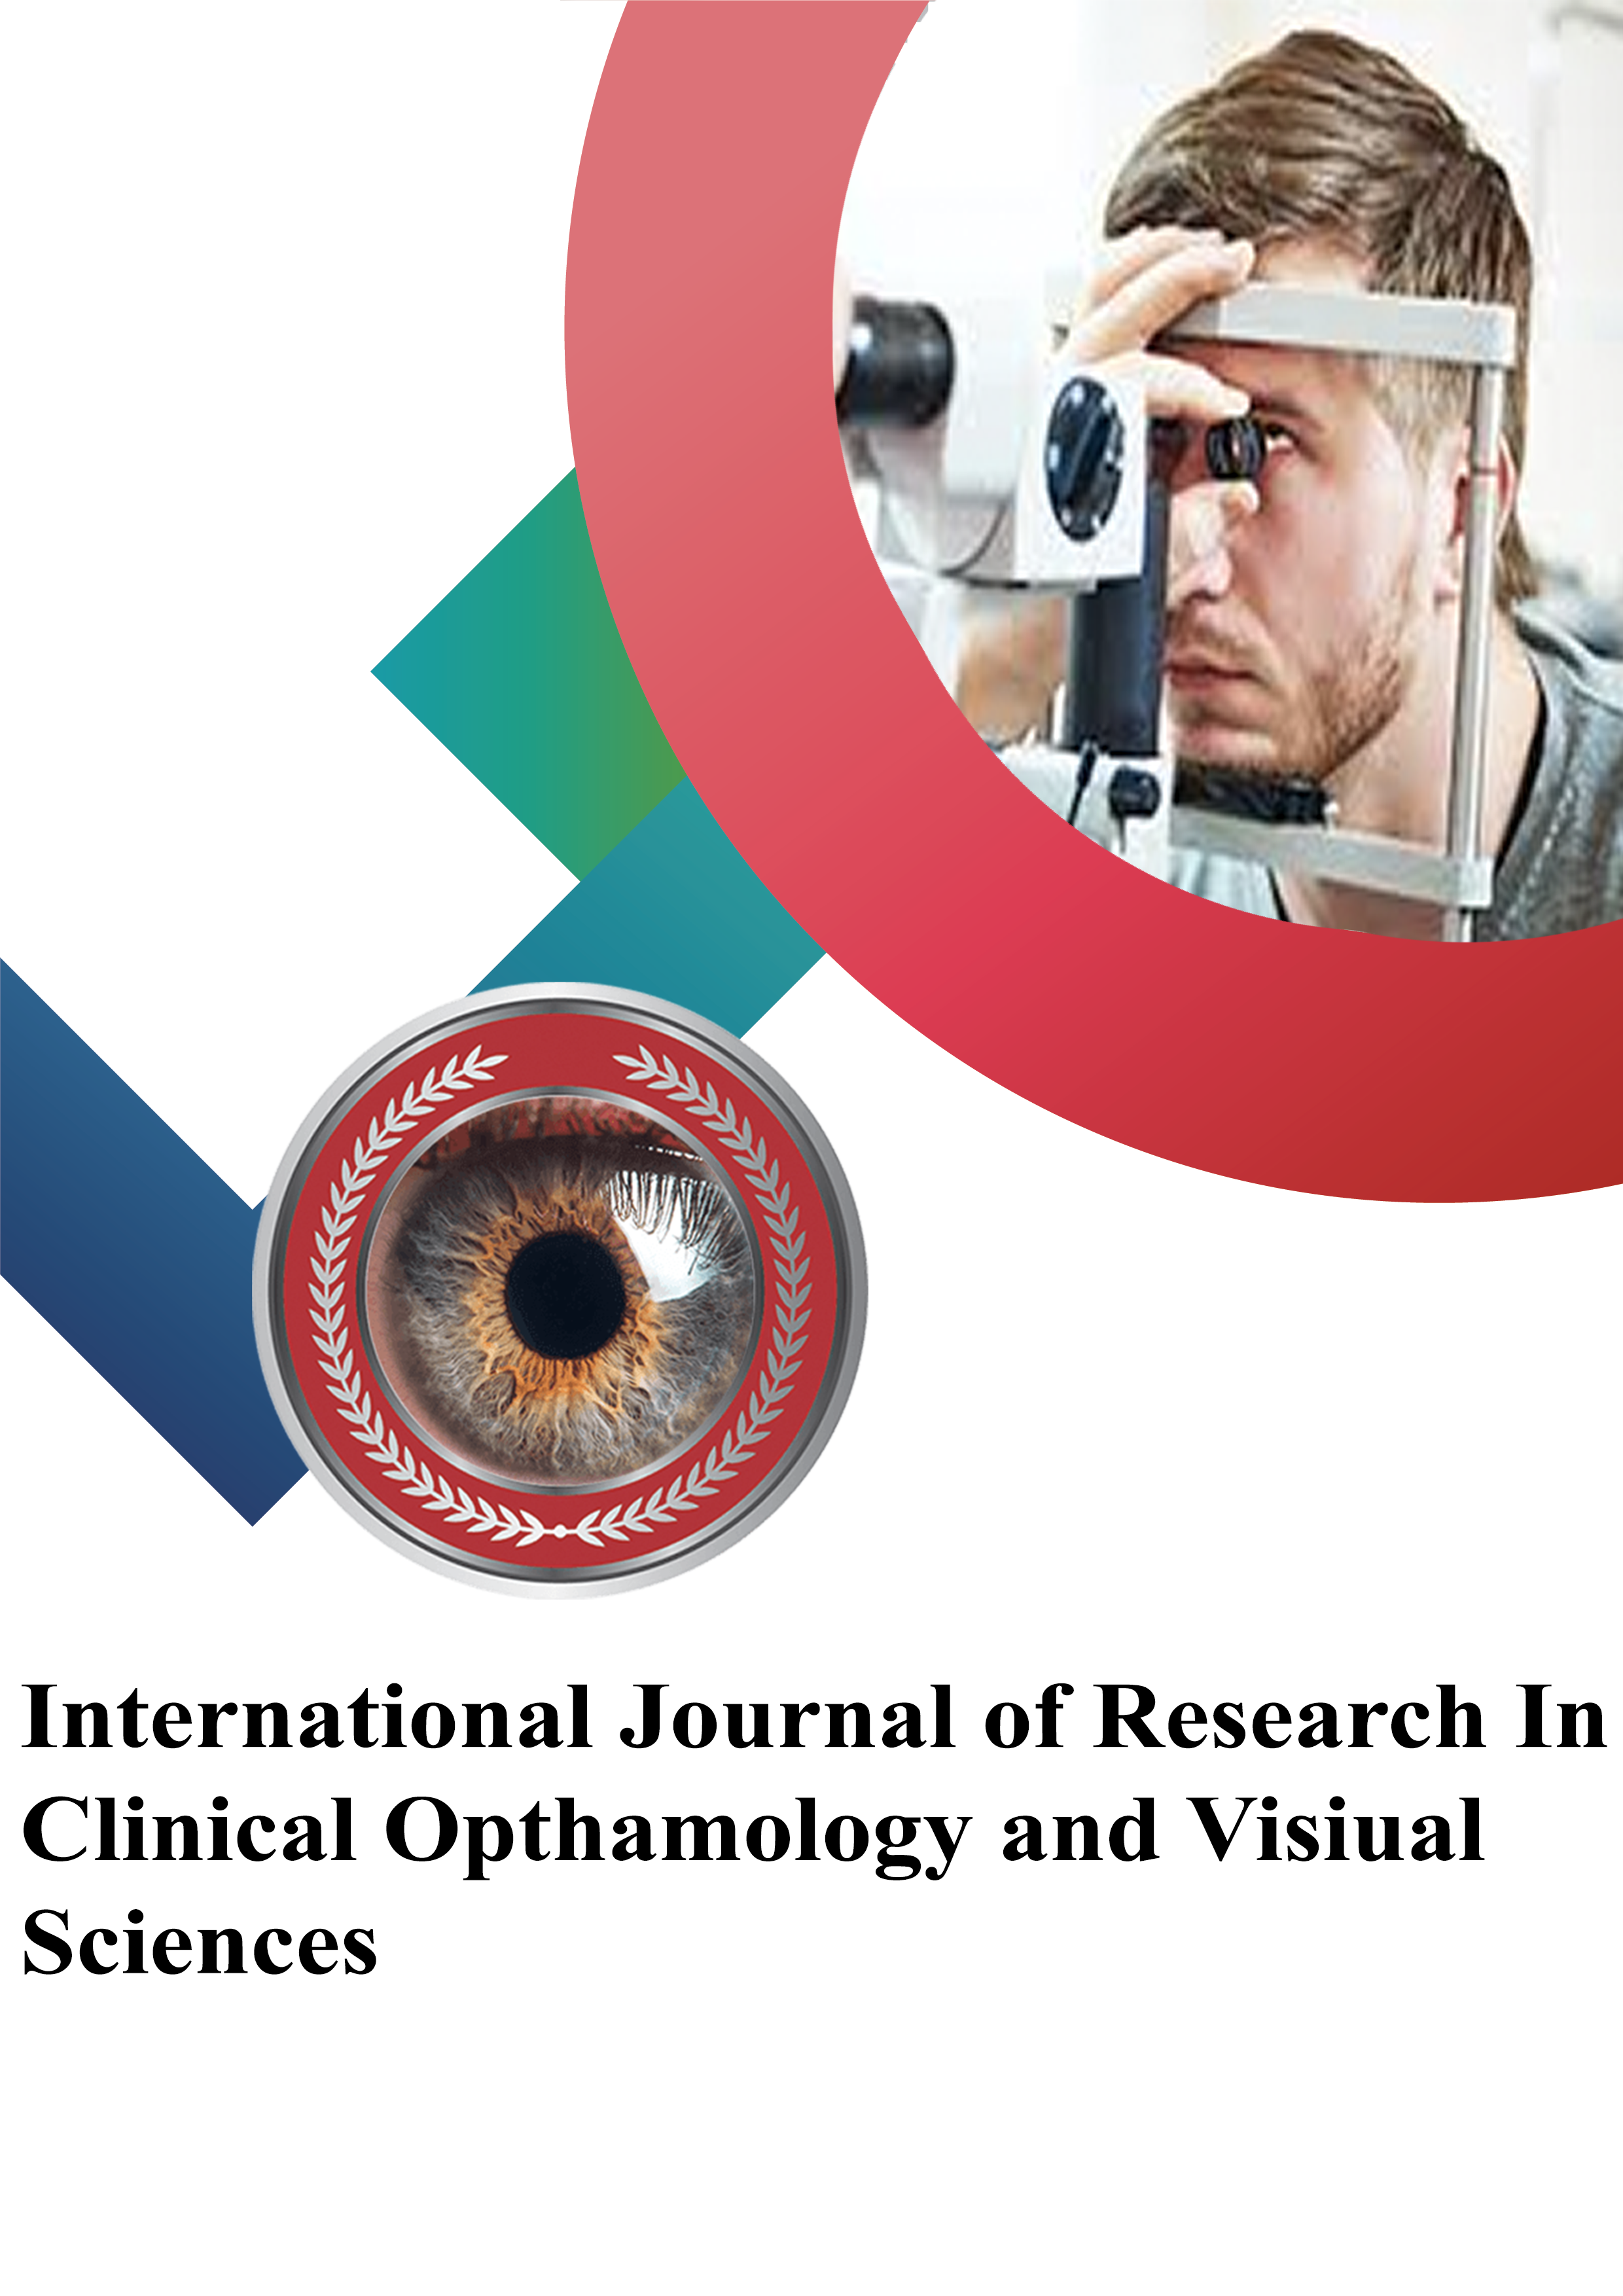 International Journal of Research In Clinical Opthamology And Visiual Sciences